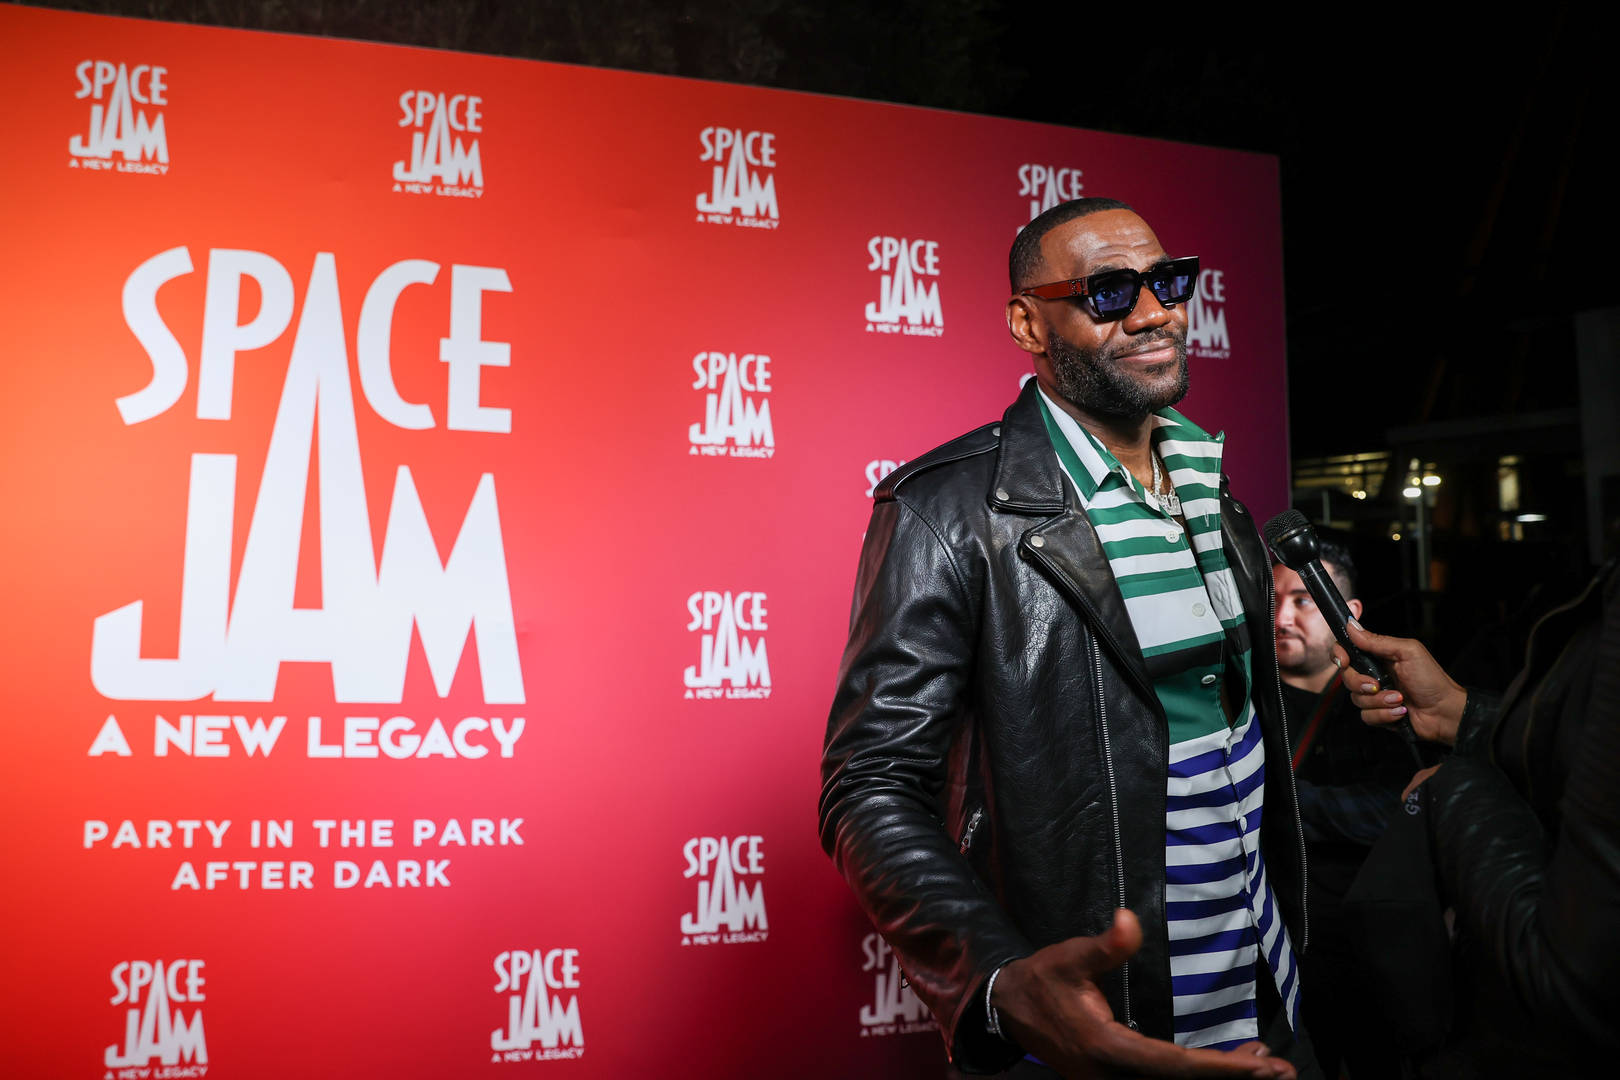 LeBron James attends the Space Jam: A New Legacy Party in The Park After Dark at Six Flags Magic Mountain on June 29, 2021 in Valencia, California.